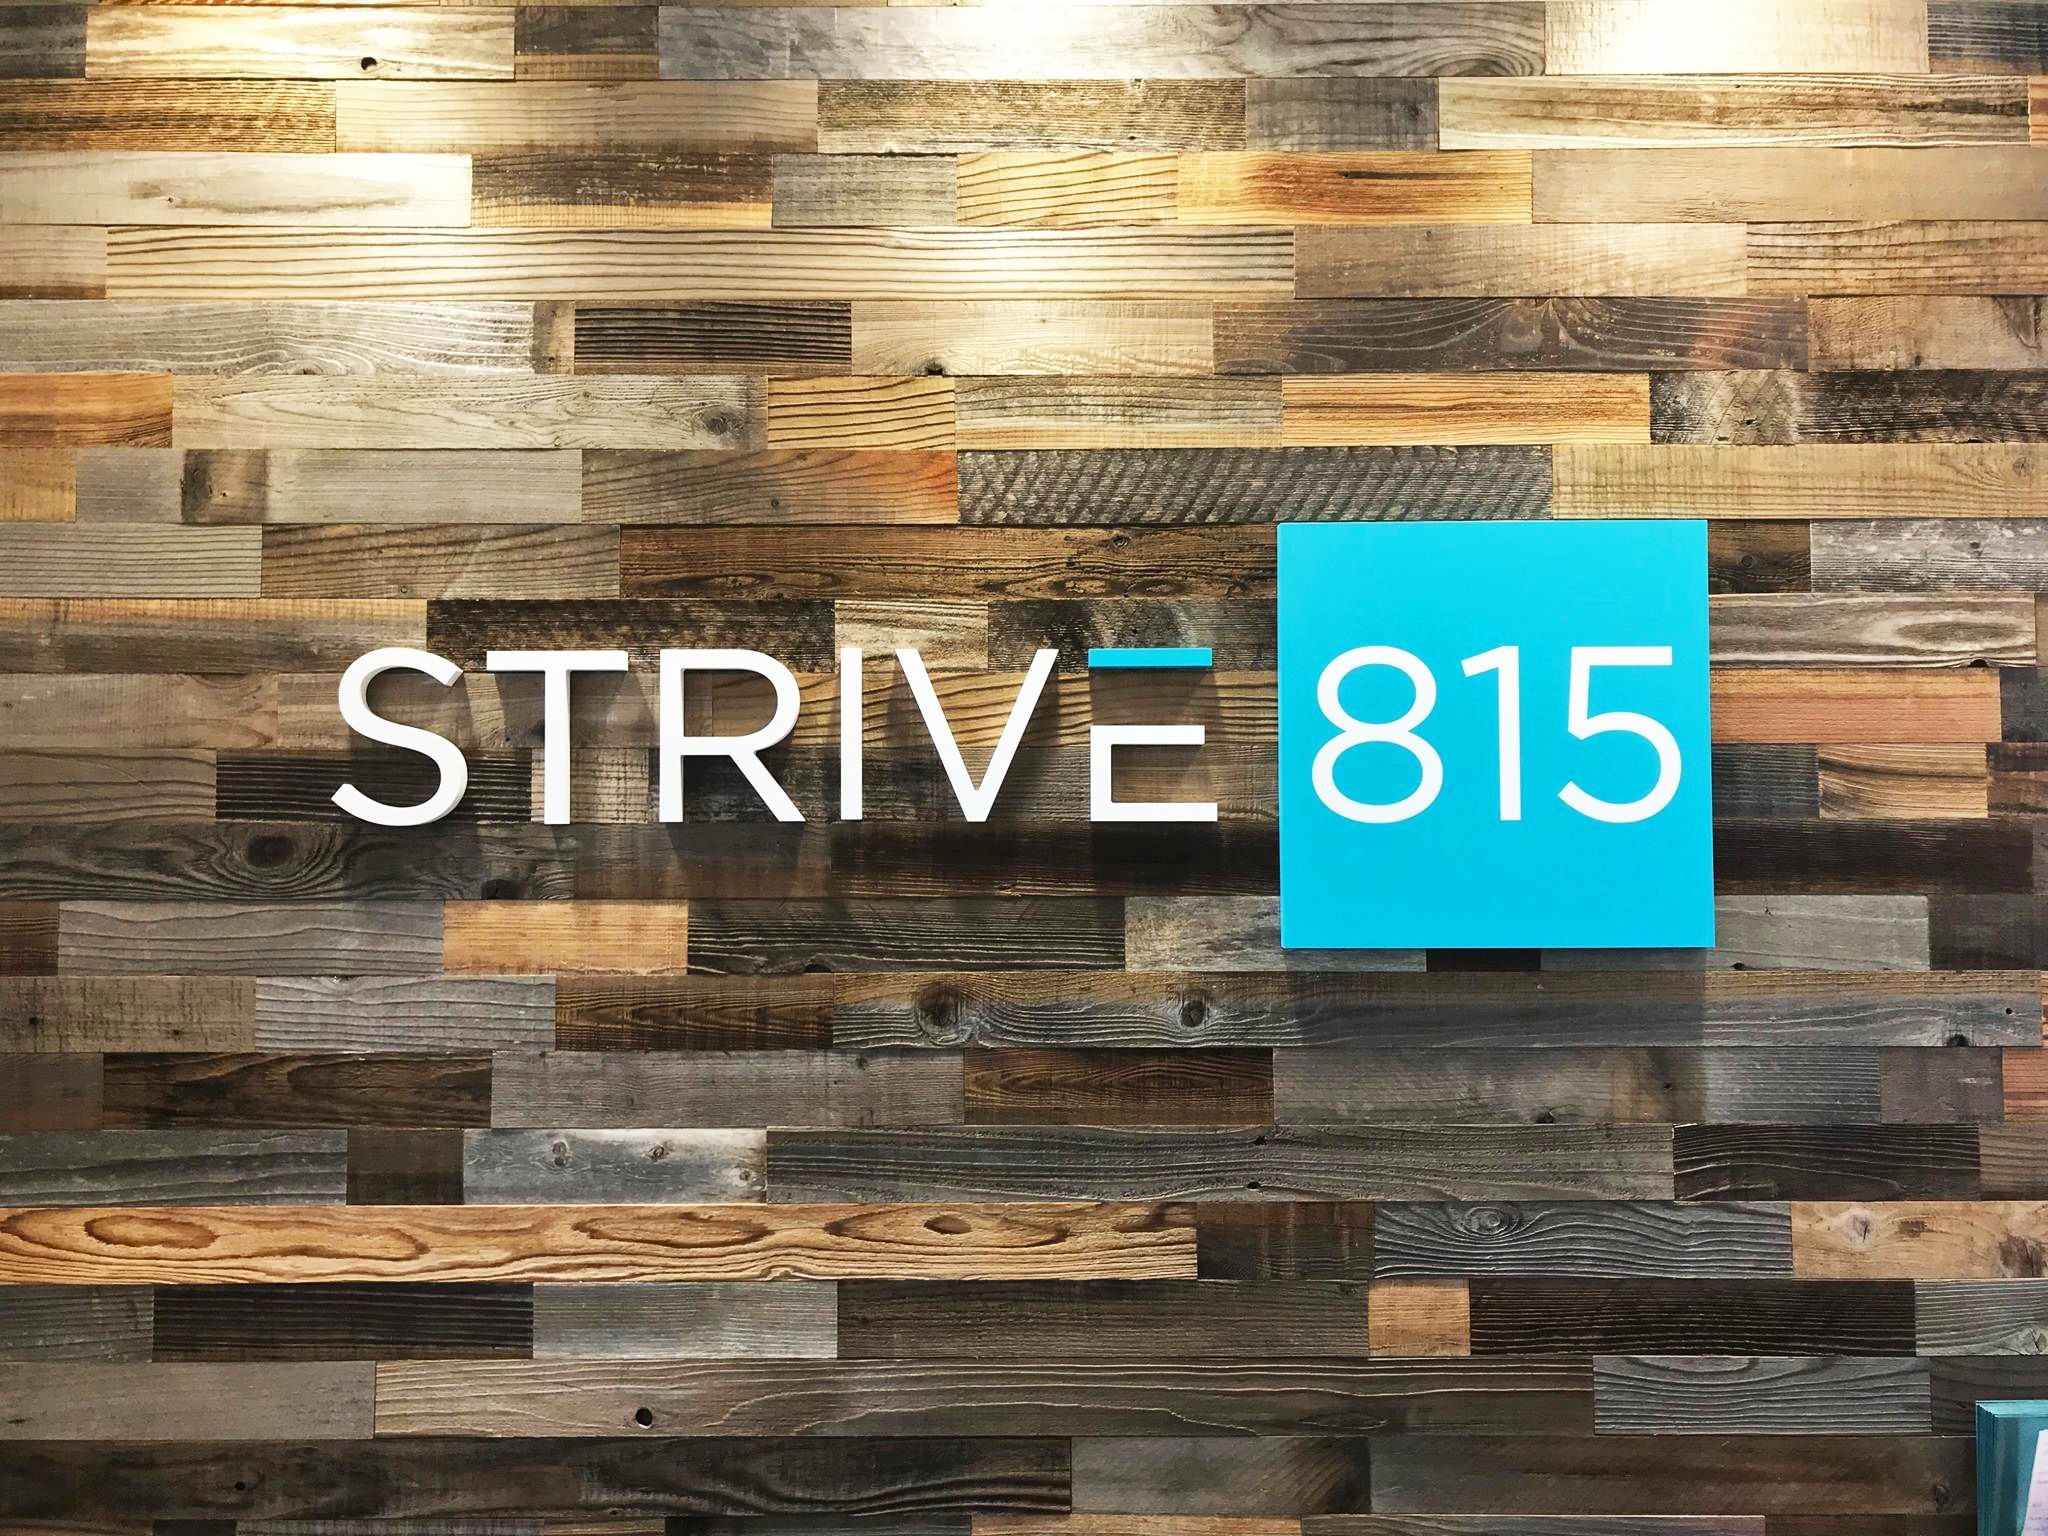 Strive 815 Dimensional Sign with 3-quarter inch thick dimensional letters installed onto a reclaimed wood wall